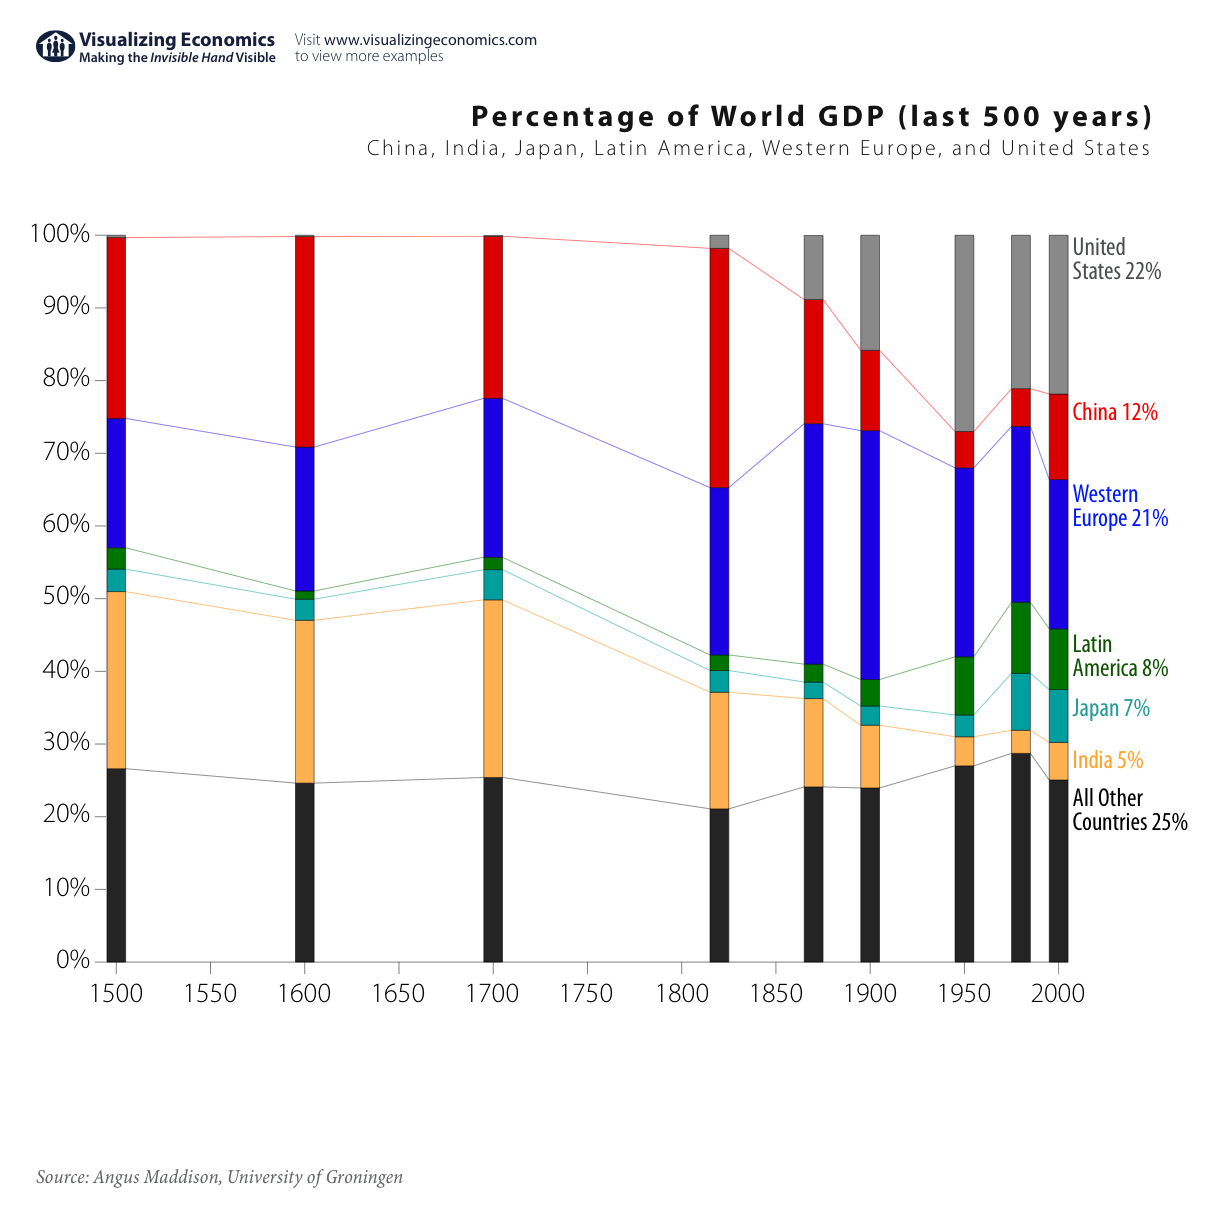 Share Of World GDP  |   Share of GDP: China, India, Japan, Latin America, Western Europe, United States; January 20, 2008; image source & courtesy - visualizingeconomics.com